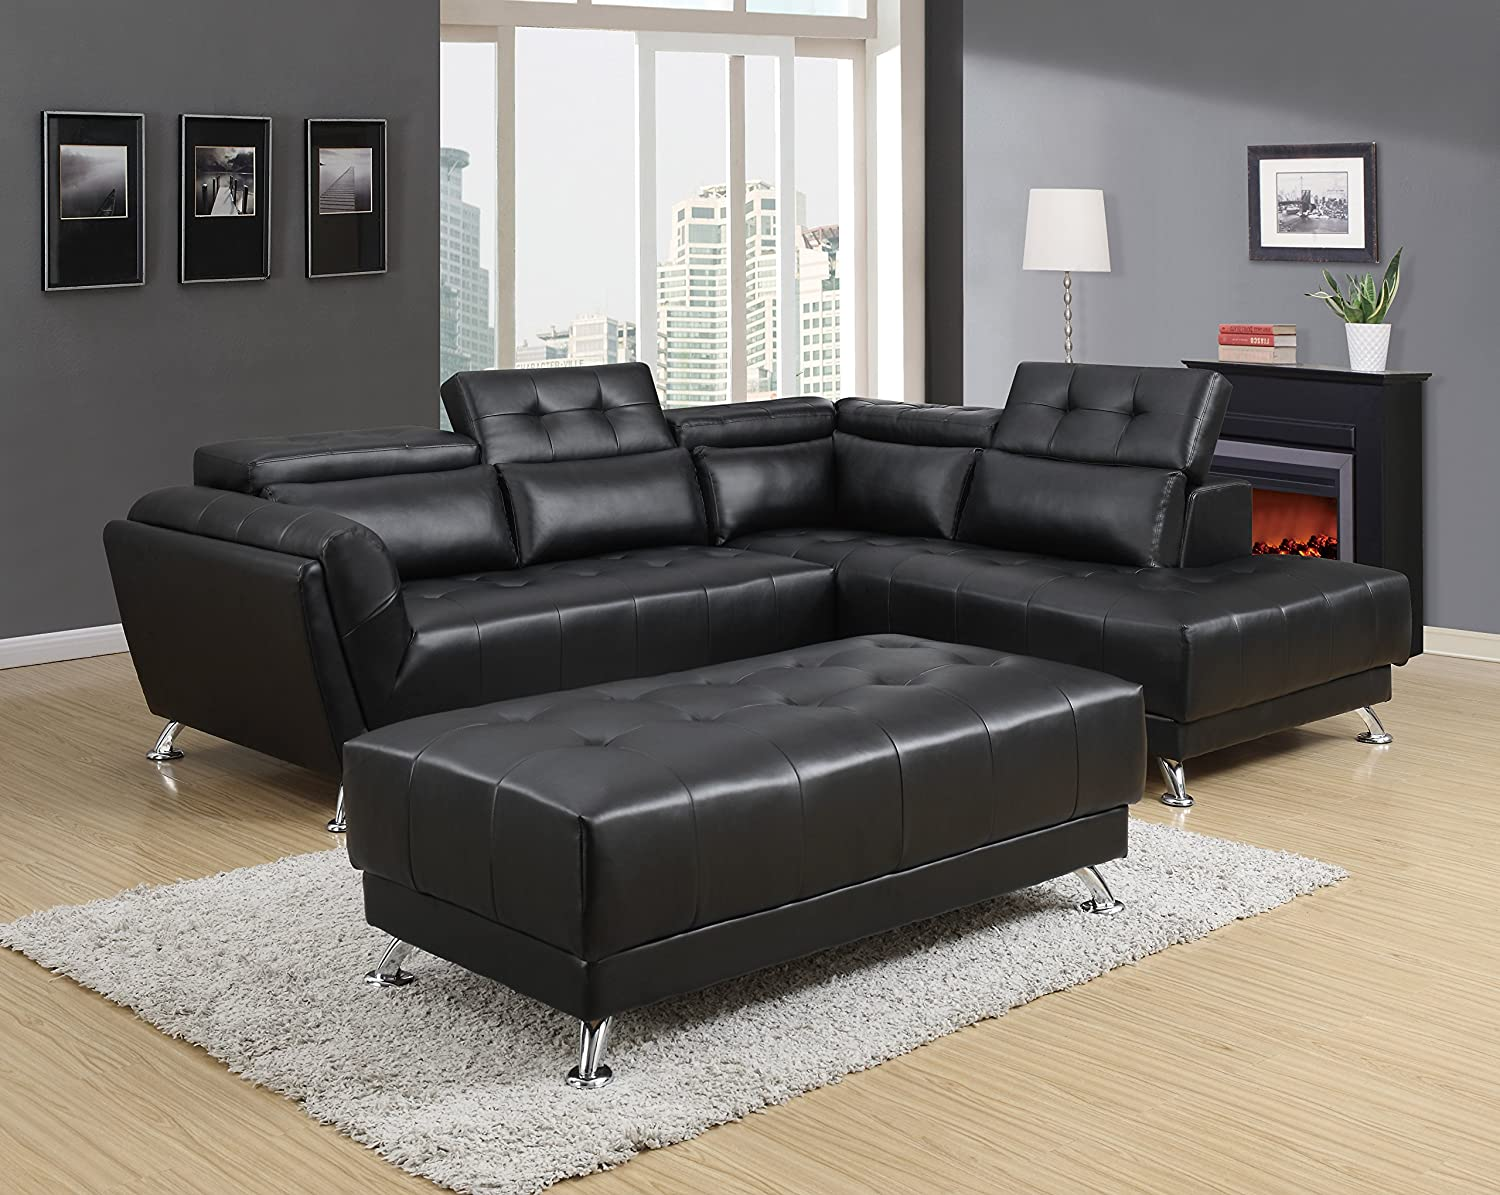 Magnificent Amazon Com Global Furniture U8859 Black Sectional Gmtry Best Dining Table And Chair Ideas Images Gmtryco